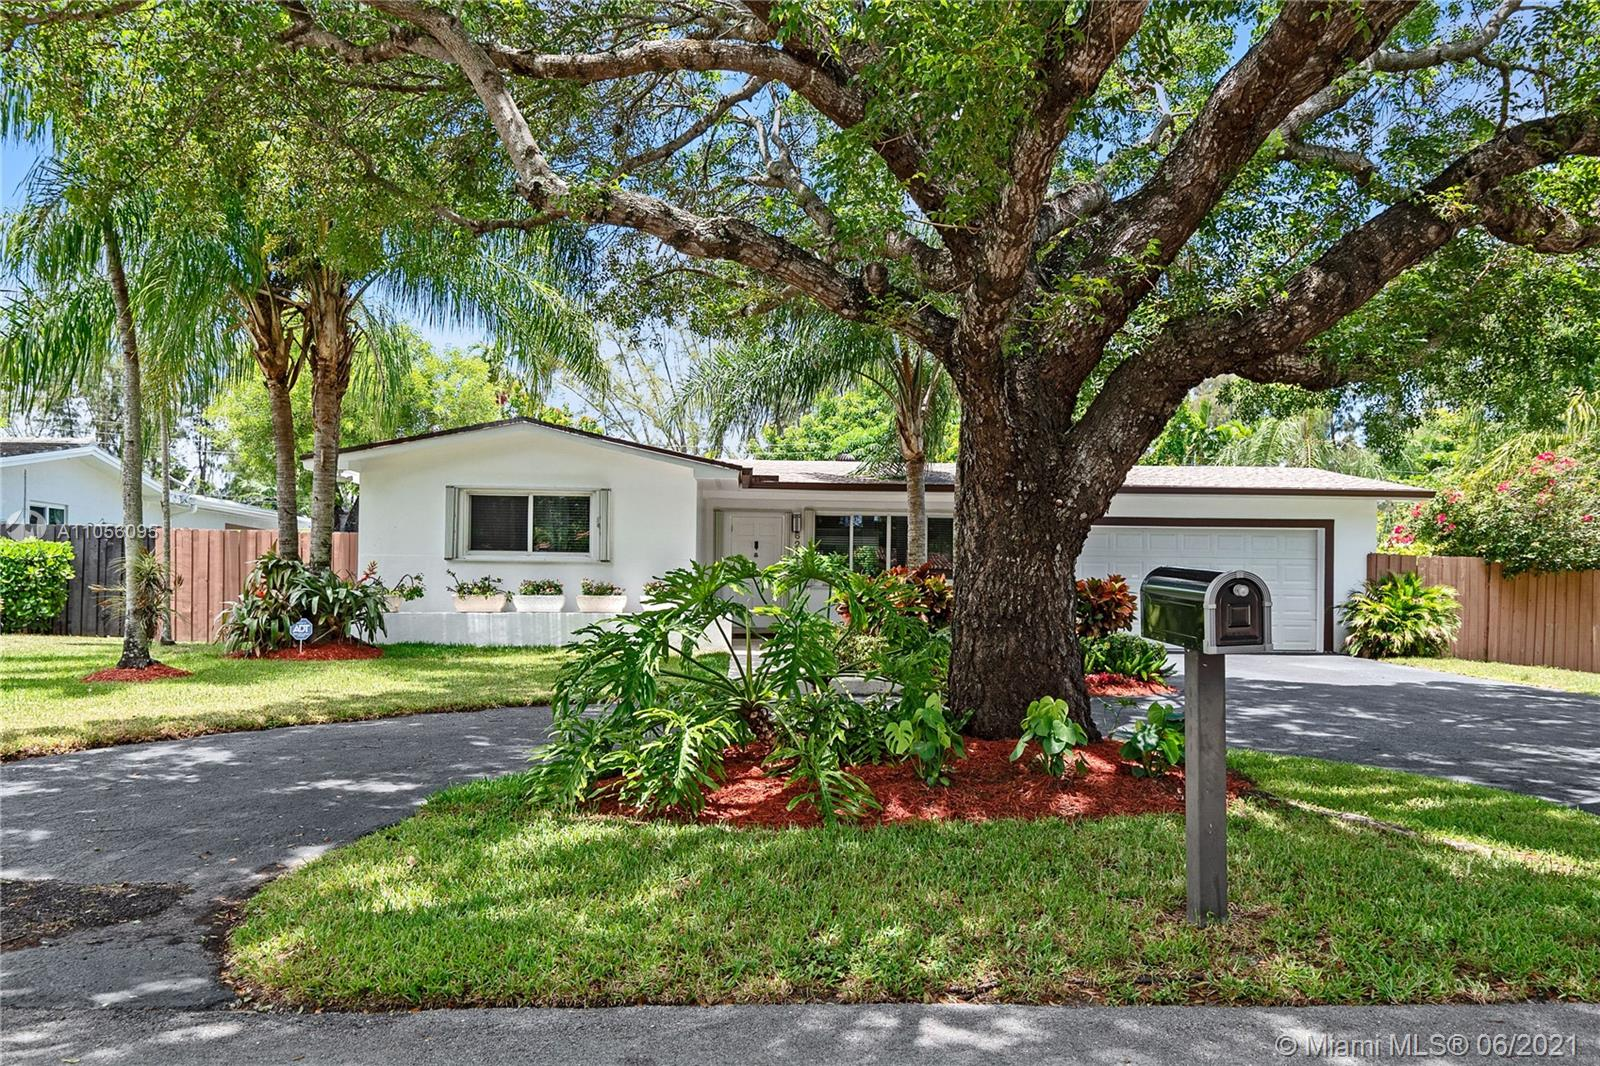 CENTRALLY LOCATED SOUTH MIAMI HOME, CLOSE TO CORAL GABLES, UNIVERSITY OF MIAMI, SOUTH MIAMI HOSPITAL AND PALMETTO EXPRESSWAY. BIG FENCED LOT - 12,000 SF WITH SPACE TO PARK A BOAT ON THE SIDE. COMPLETELY RENOVATED, INCLUDES 1 YEAR OLD ROOF & GUTTERS, NEW ELECTRICITY, NEW POOL, DIAMOND BRIGHT, NEW LED POOL LIGHT TO ENJOY A RAINBOW POOL AT NIGHT, NEW LATEX DECK, NEW NATURAL GAS LINE BIG ENOUGH TO HOLD A GENERATOR THAT POWERS THE WHOLE HOUSE + POOL. TANKLESS GAS WATER HEATER. VERY OPEN FLOOR PLAN WHICH OPENS TO POOL AREA, REALLY BRIGHT & LIGHT. NEW MASTER BATHROOM, NEW REFRIGERATOR, NEW MICROWAVE, 2 YEAR OLD RANGE, RECESSED LIGHTING, FRESHLY PAINTED WITH SPECIAL POINT THAT CAN BE PRESSURE WASHED AND MANY MORE GREAT THINGS, TOO MANY TO MENTION.